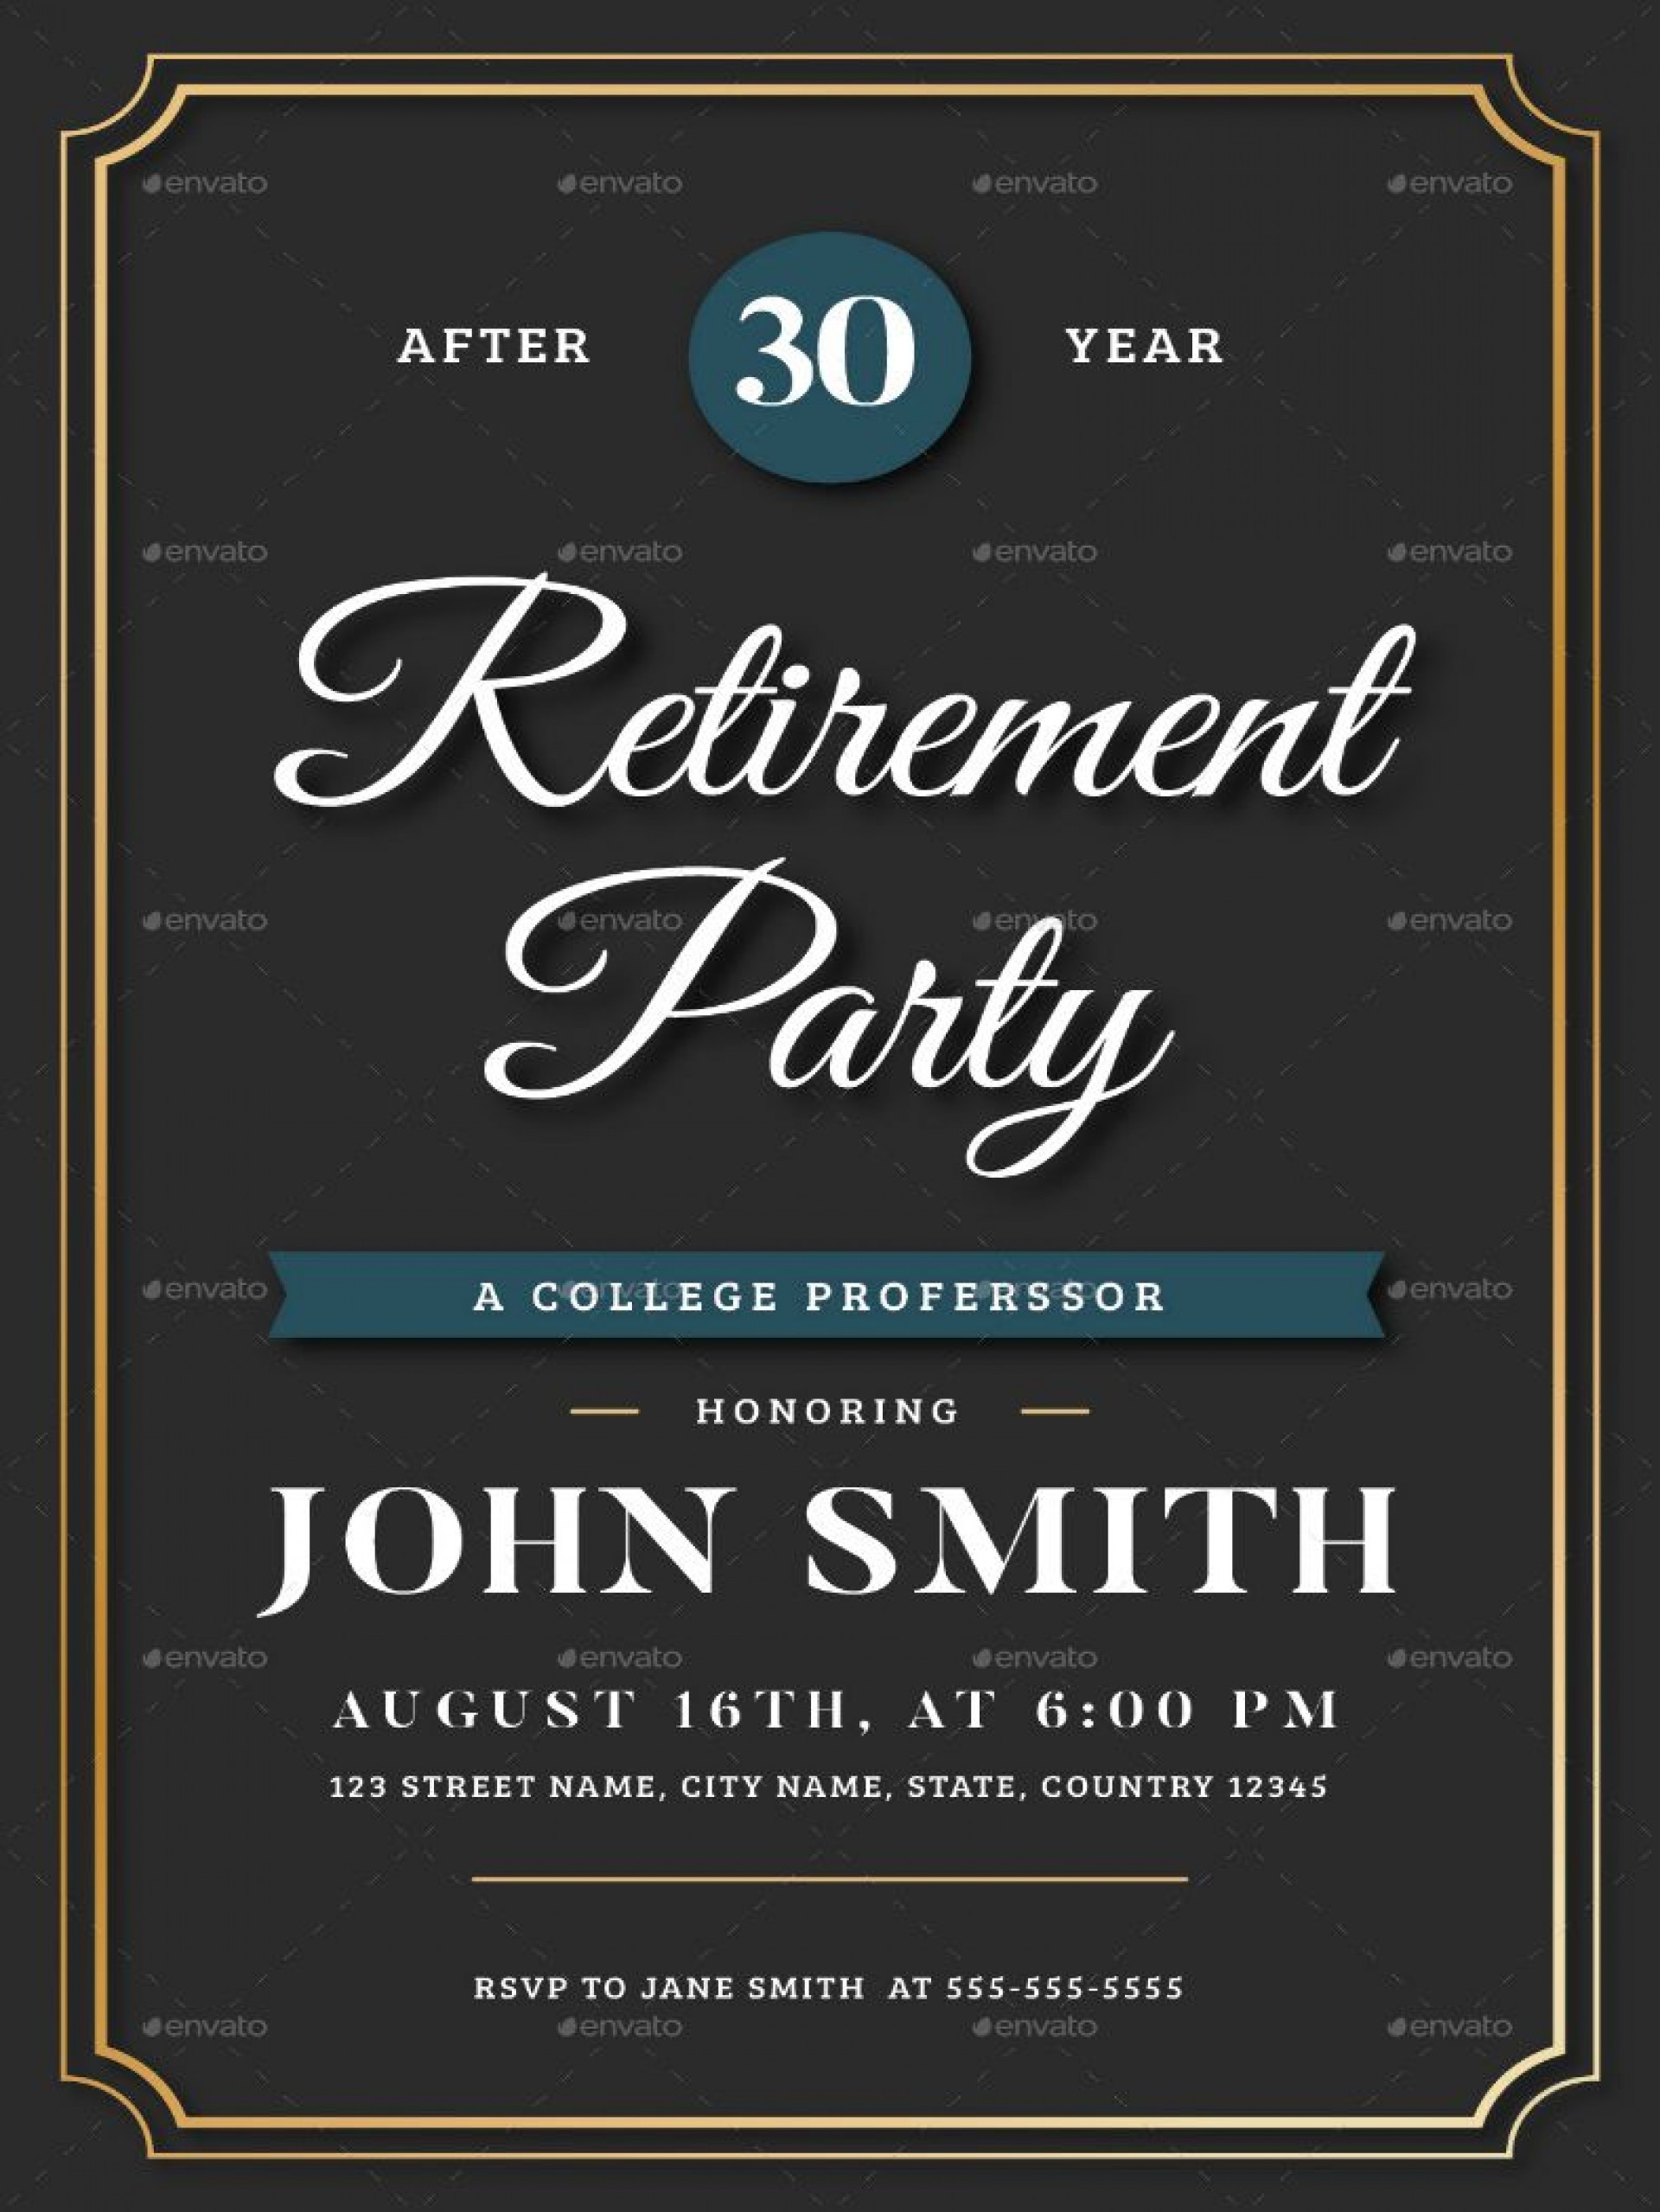 006 Breathtaking Free Retirement Invitation Template Sample  Templates Microsoft Word Party Flyer1920